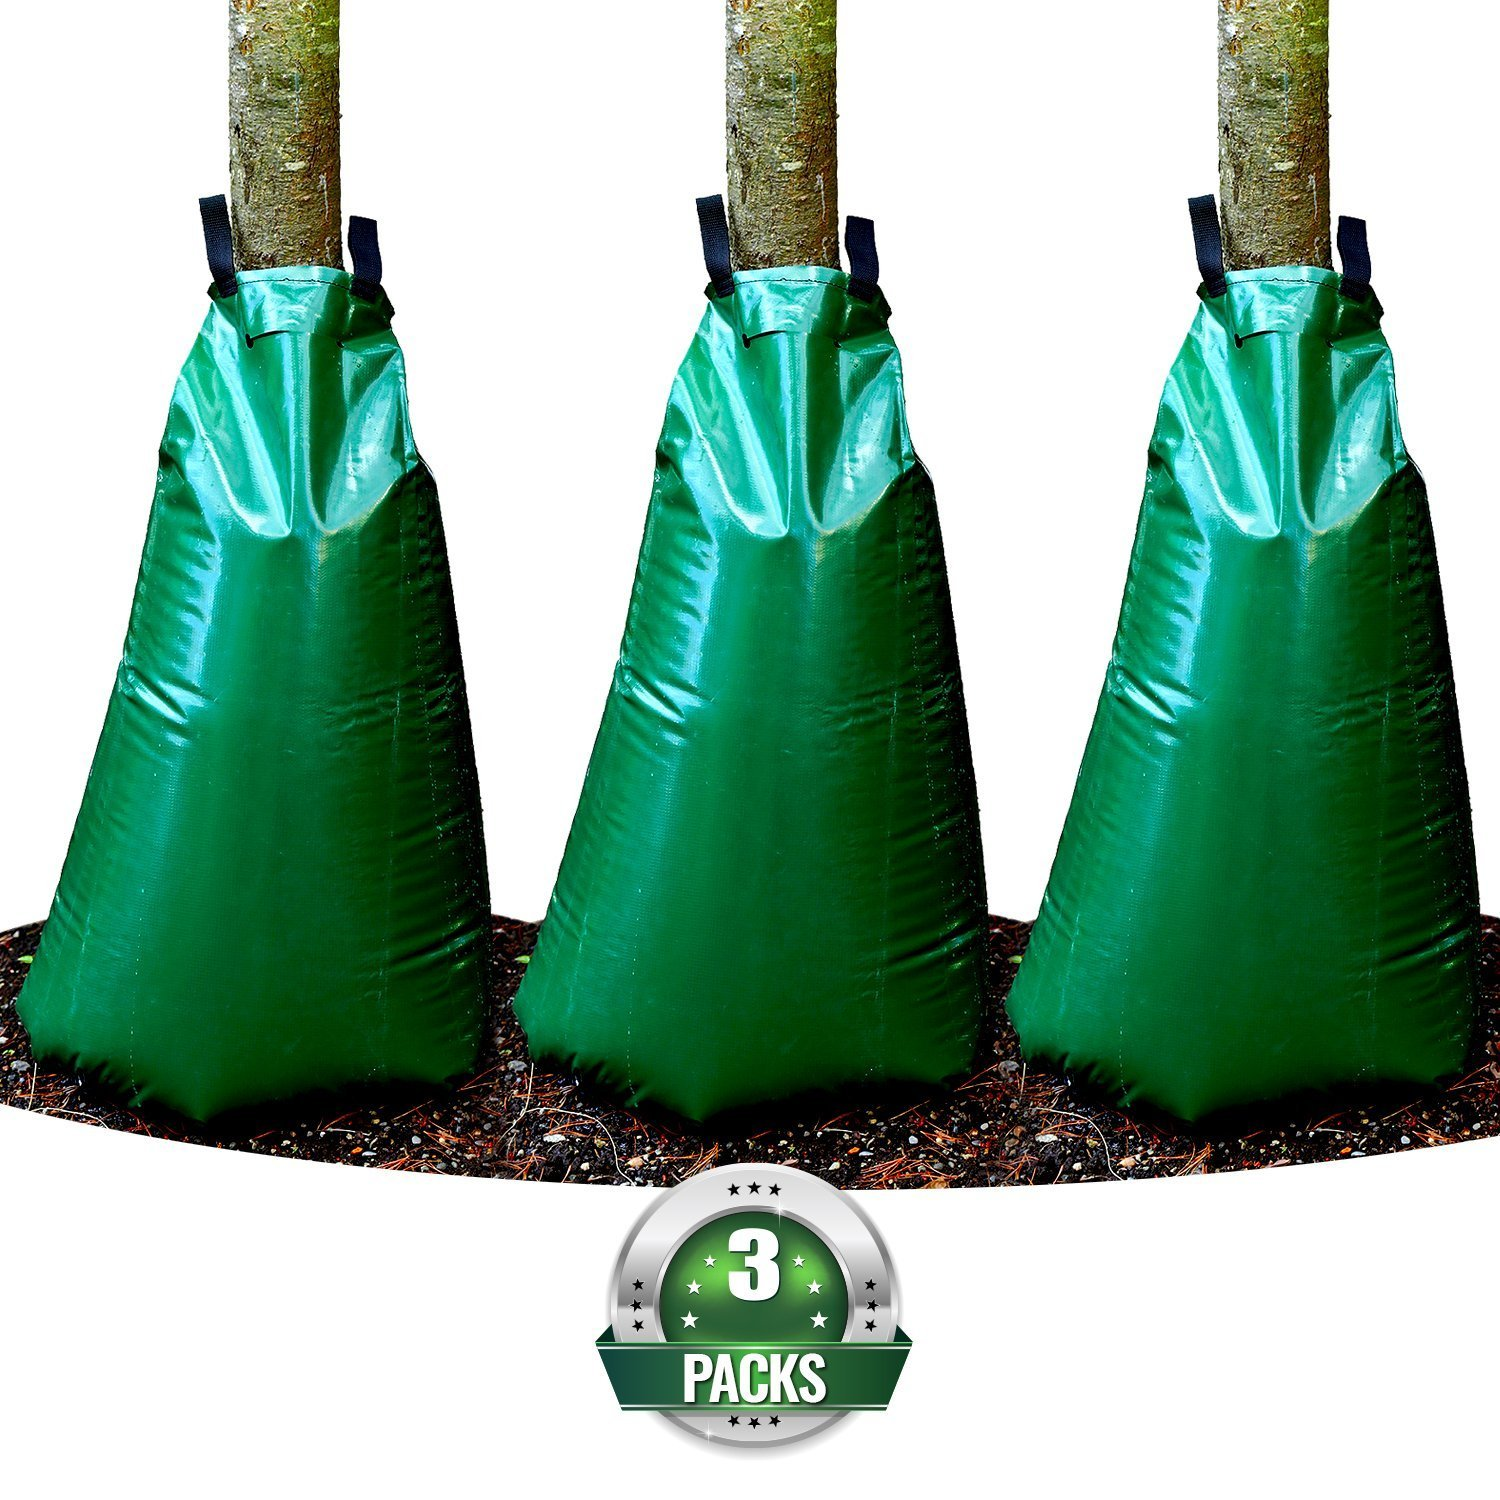 20 Gallon Watering Bags for Trees and Plants, Pack of 3 by